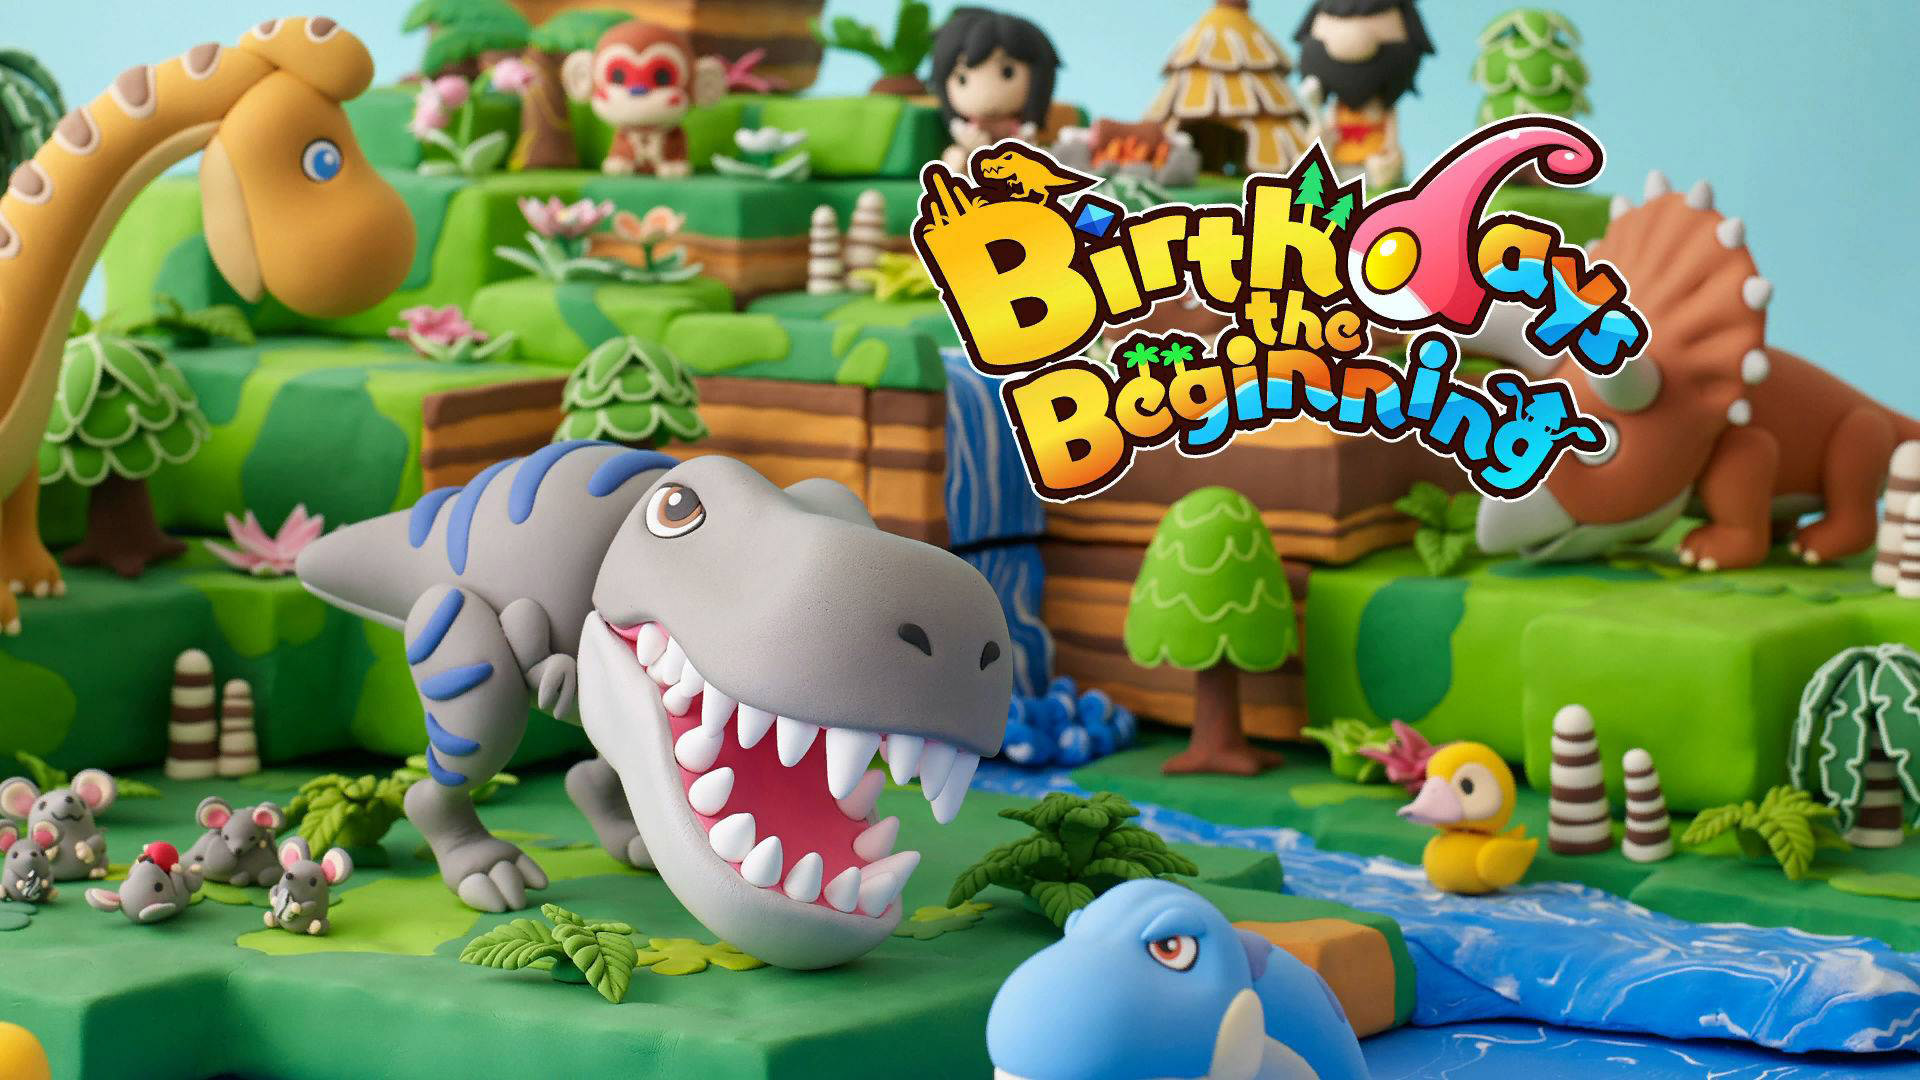 Free Birthdays the Beginning Wallpaper in 1920x1080